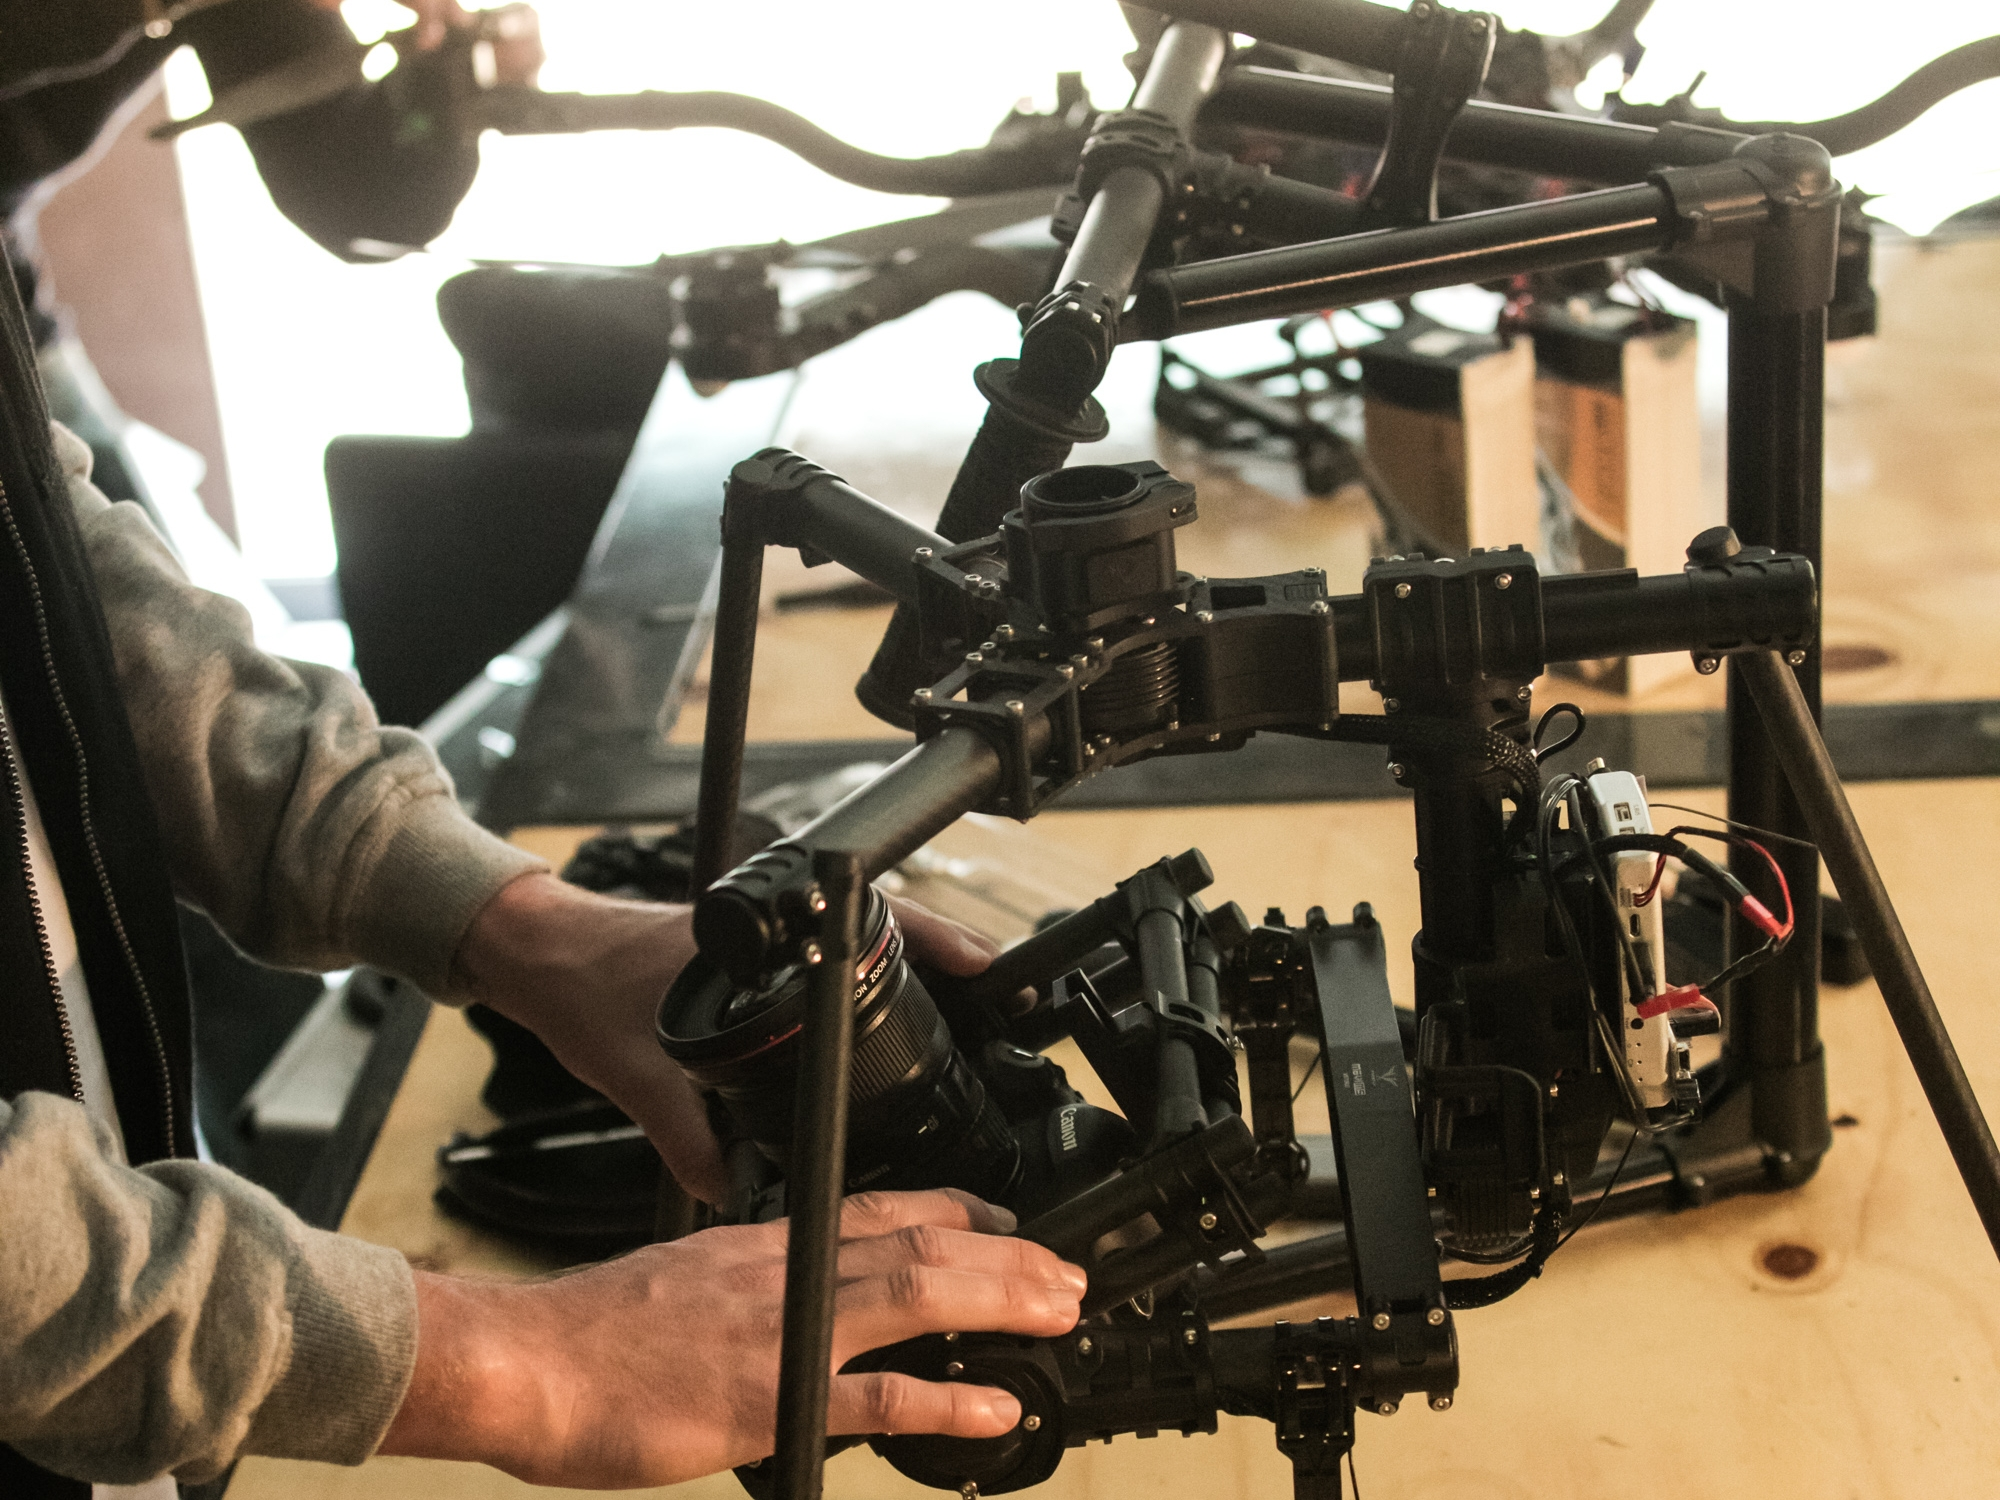 Equipment - Our drone fleet is always growing, updating and improving along with our range of cameras, gimbals and lenses. You'll most often see us flying our heavy-lift Freefly Systems ALTA 6 drone with a Sony A7Rii camera housed in Movi M10 gimbal underneath (or on top!) to capture premium photo and video content. Or if versatility and convenience is required, you'll catch us flying our Inspire 1 Pro drone systems.